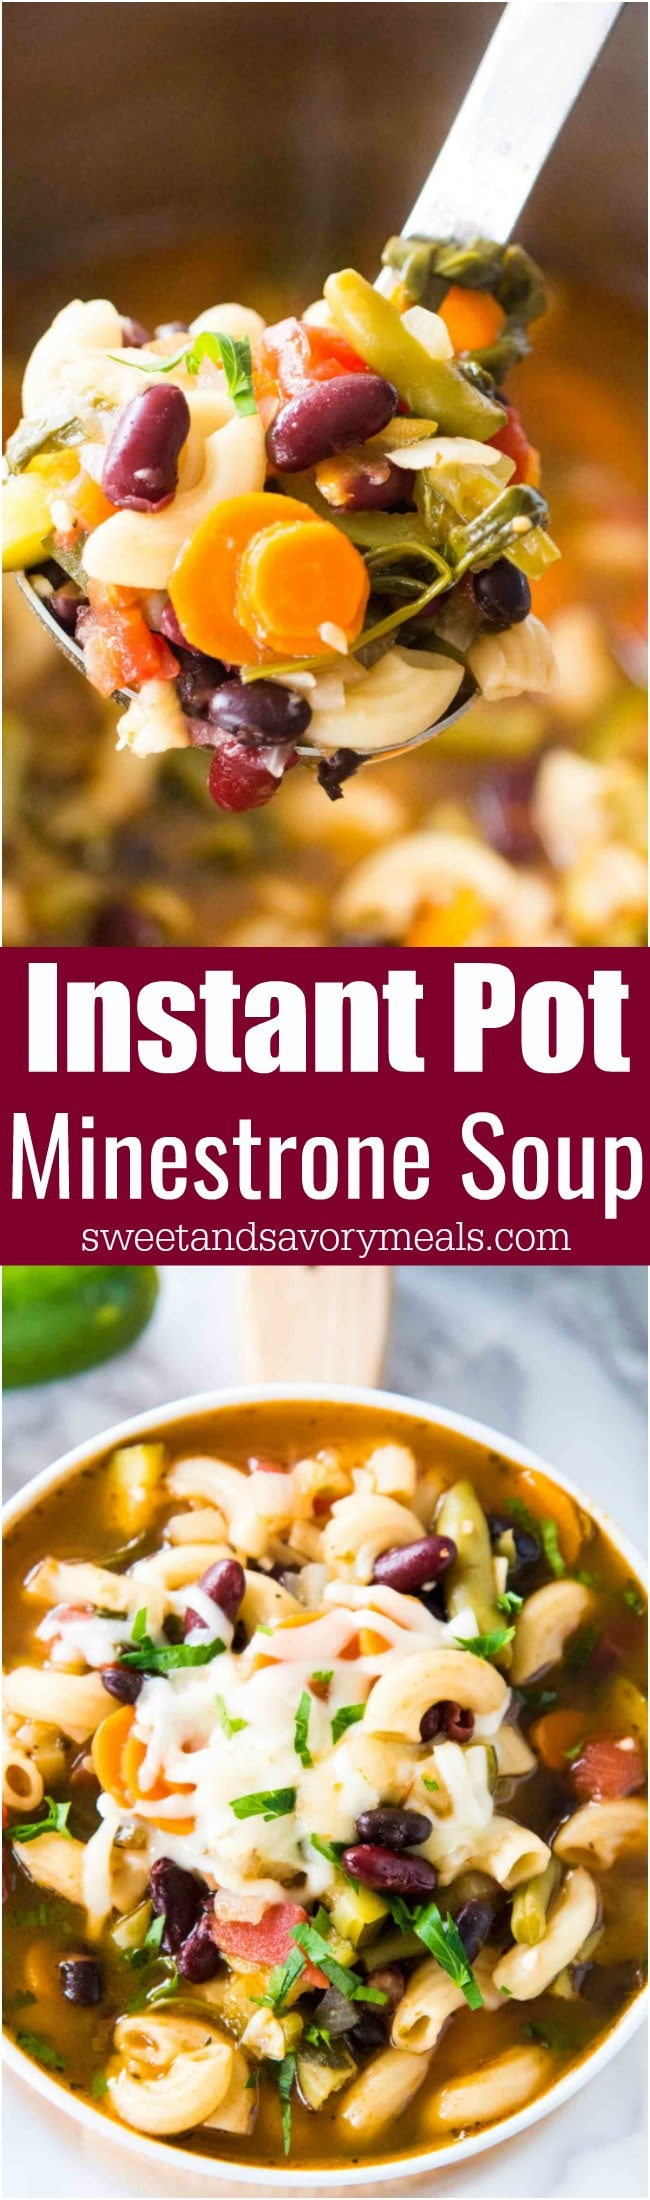 Easy Instant Pot Minestrone Soup is delightfully good, tasty and healthy! Packed with so many hearty veggies and beans you can have a few bowls guilt free.